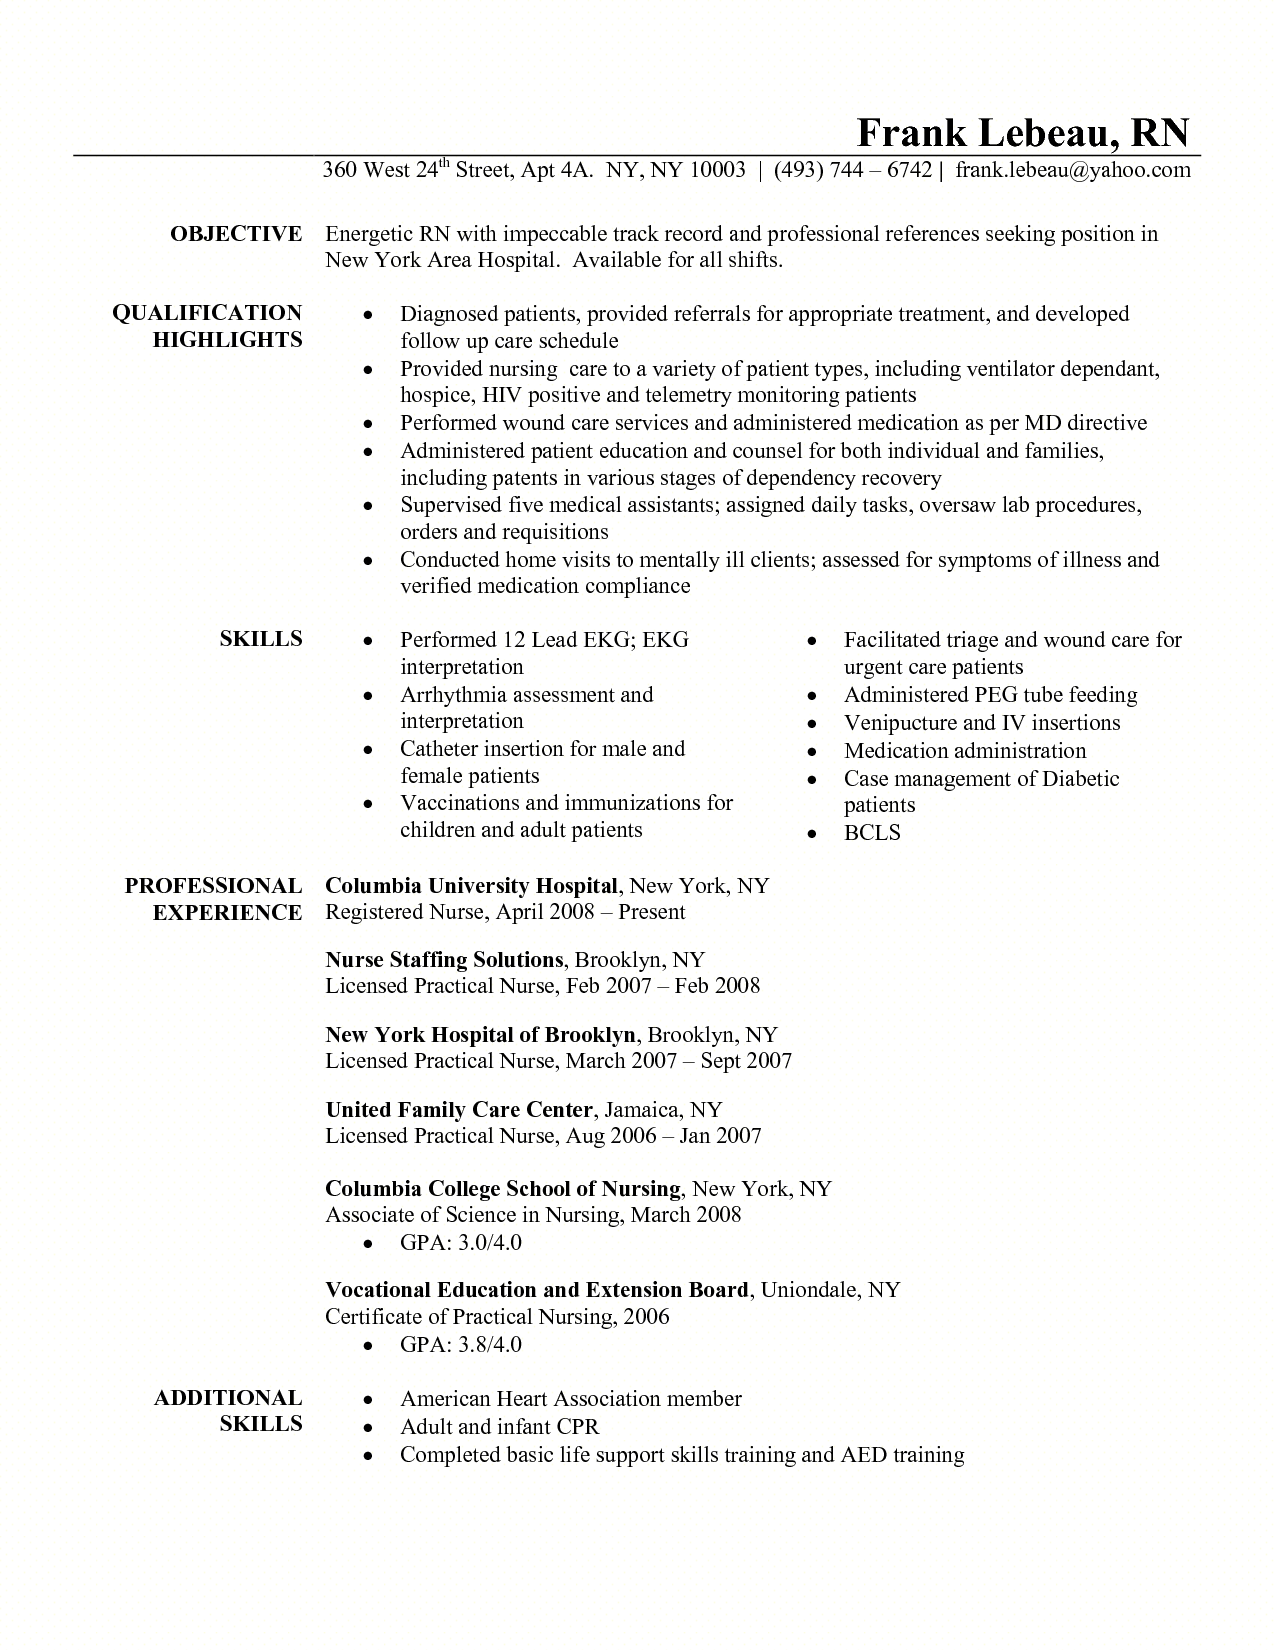 delivery nurse sample resume 11 labor and delivery nurse resume resume labor and delivery nurse - Labor And Delivery Nurse Resume